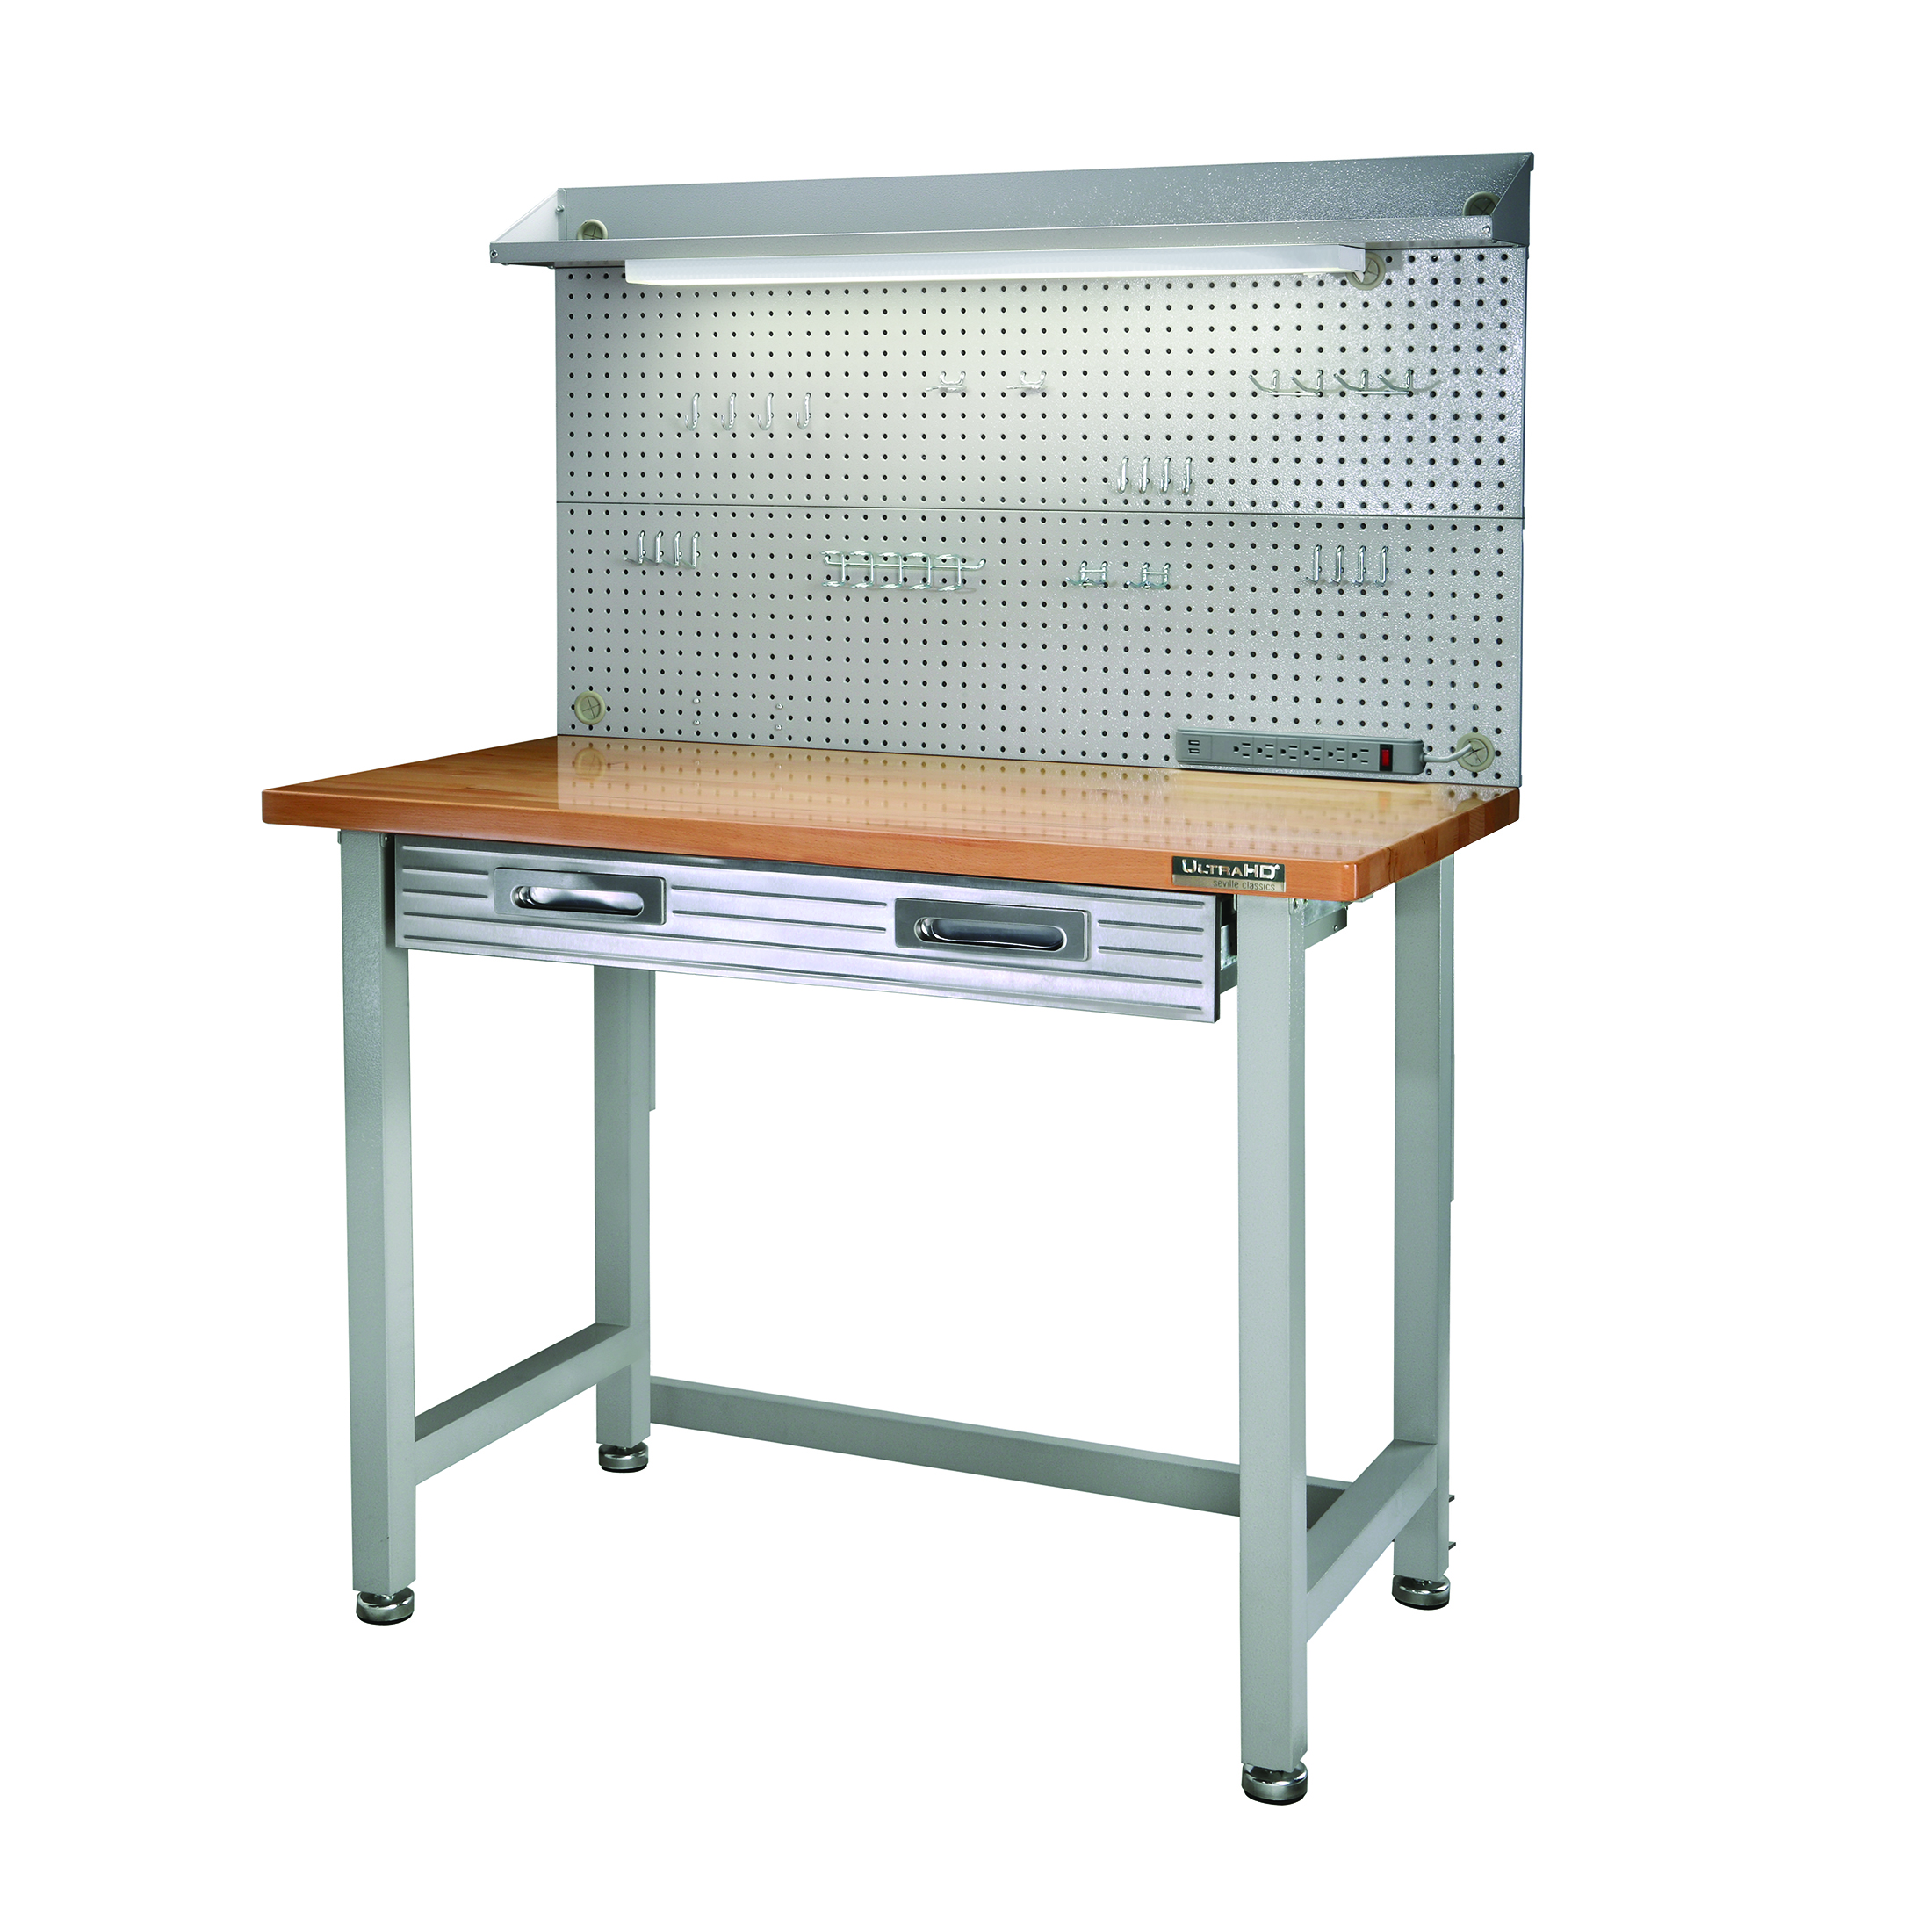 Seville Classics UltraHD Commercial Heavy-Duty Workcenter, with Pegboard